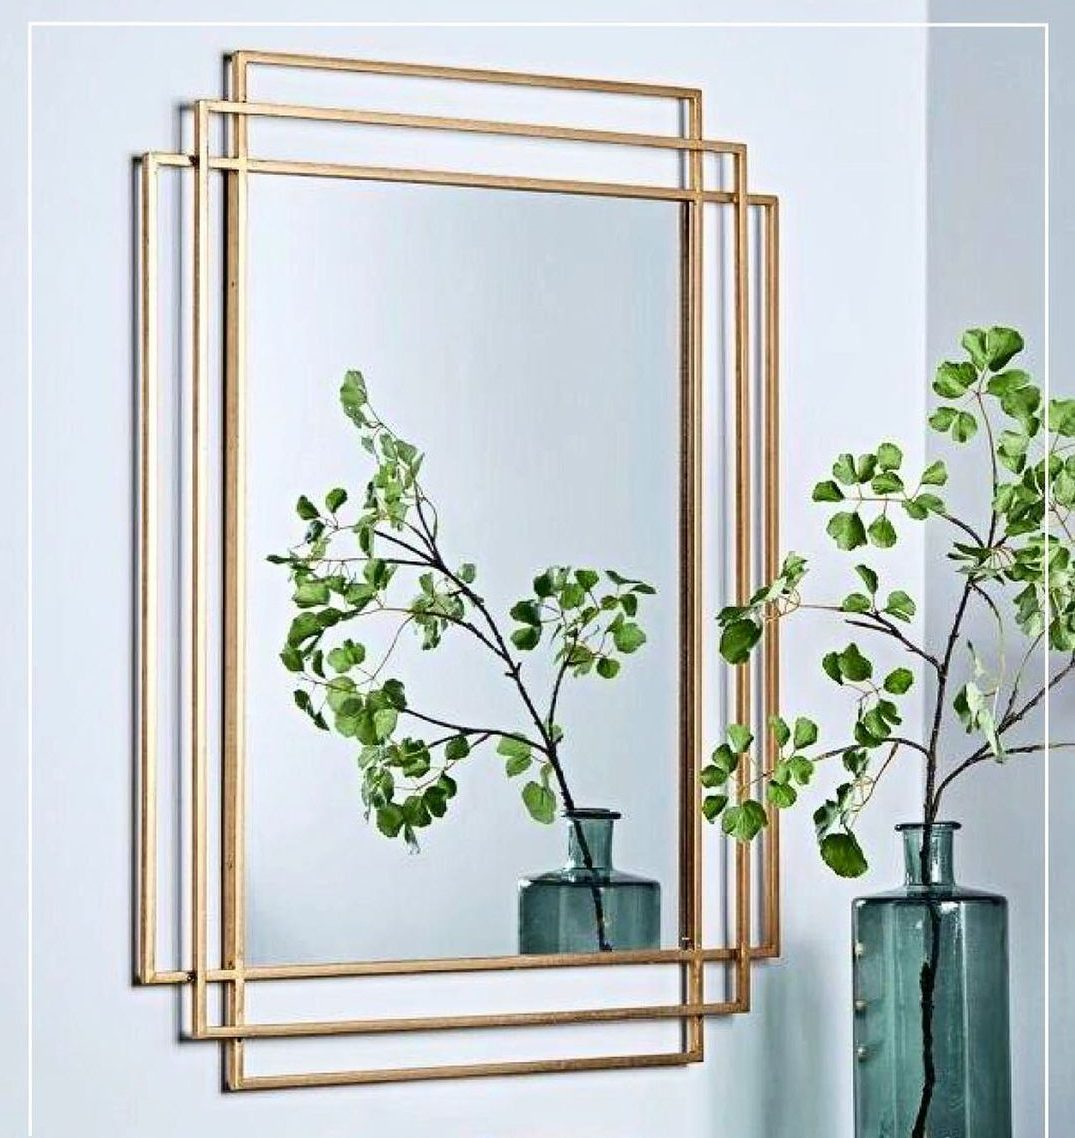 Hanging Mirrors and other mirror designs (25)